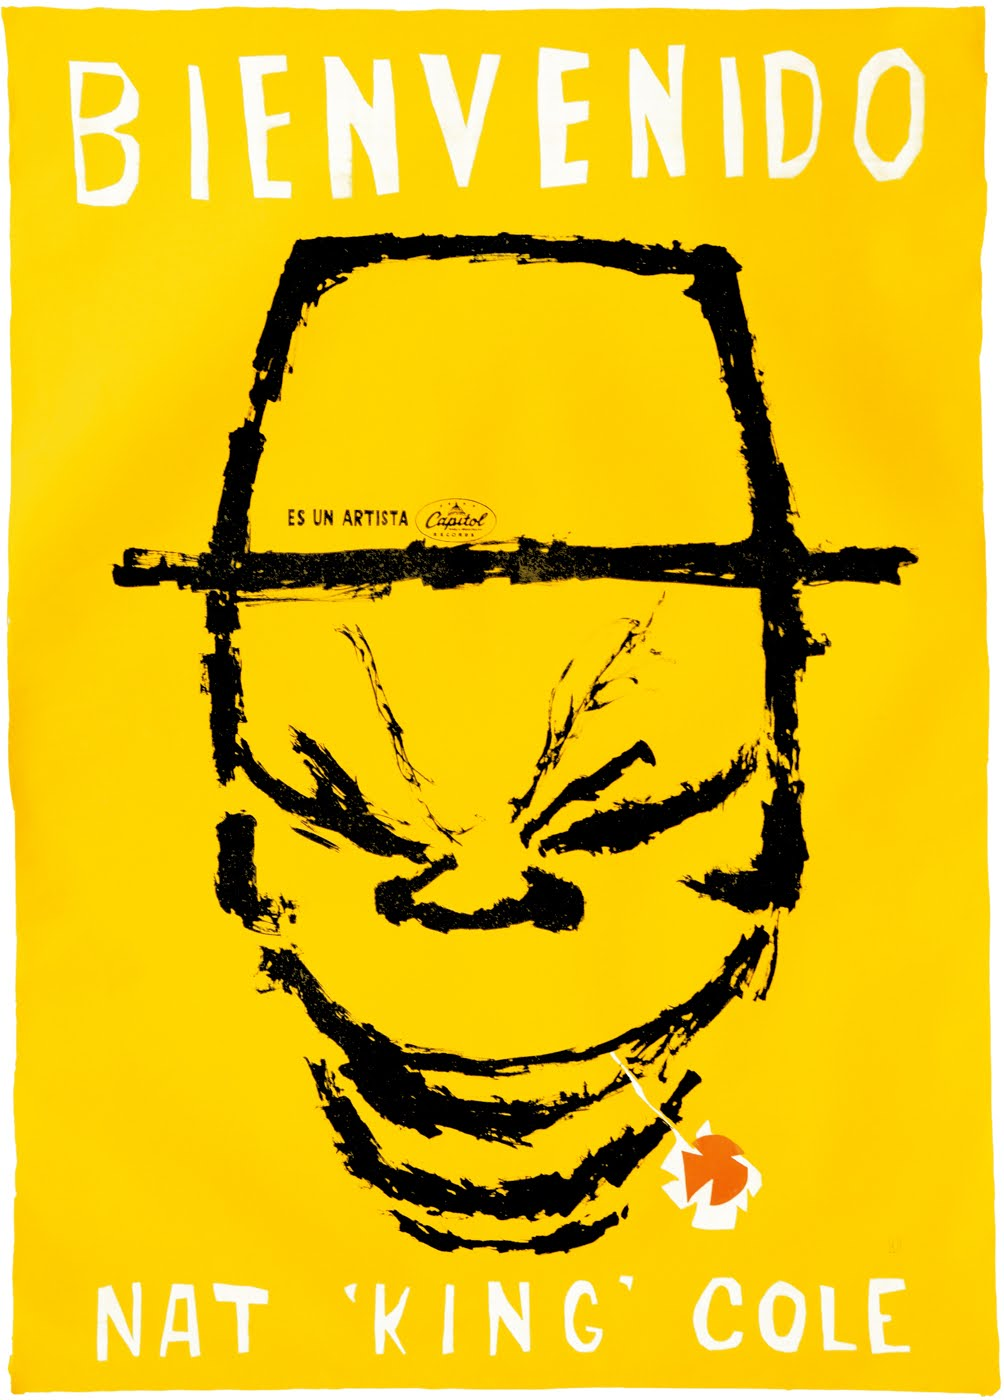 Thumbnail for The Daily Heller: Posters of Uruguay, No Foolin'!